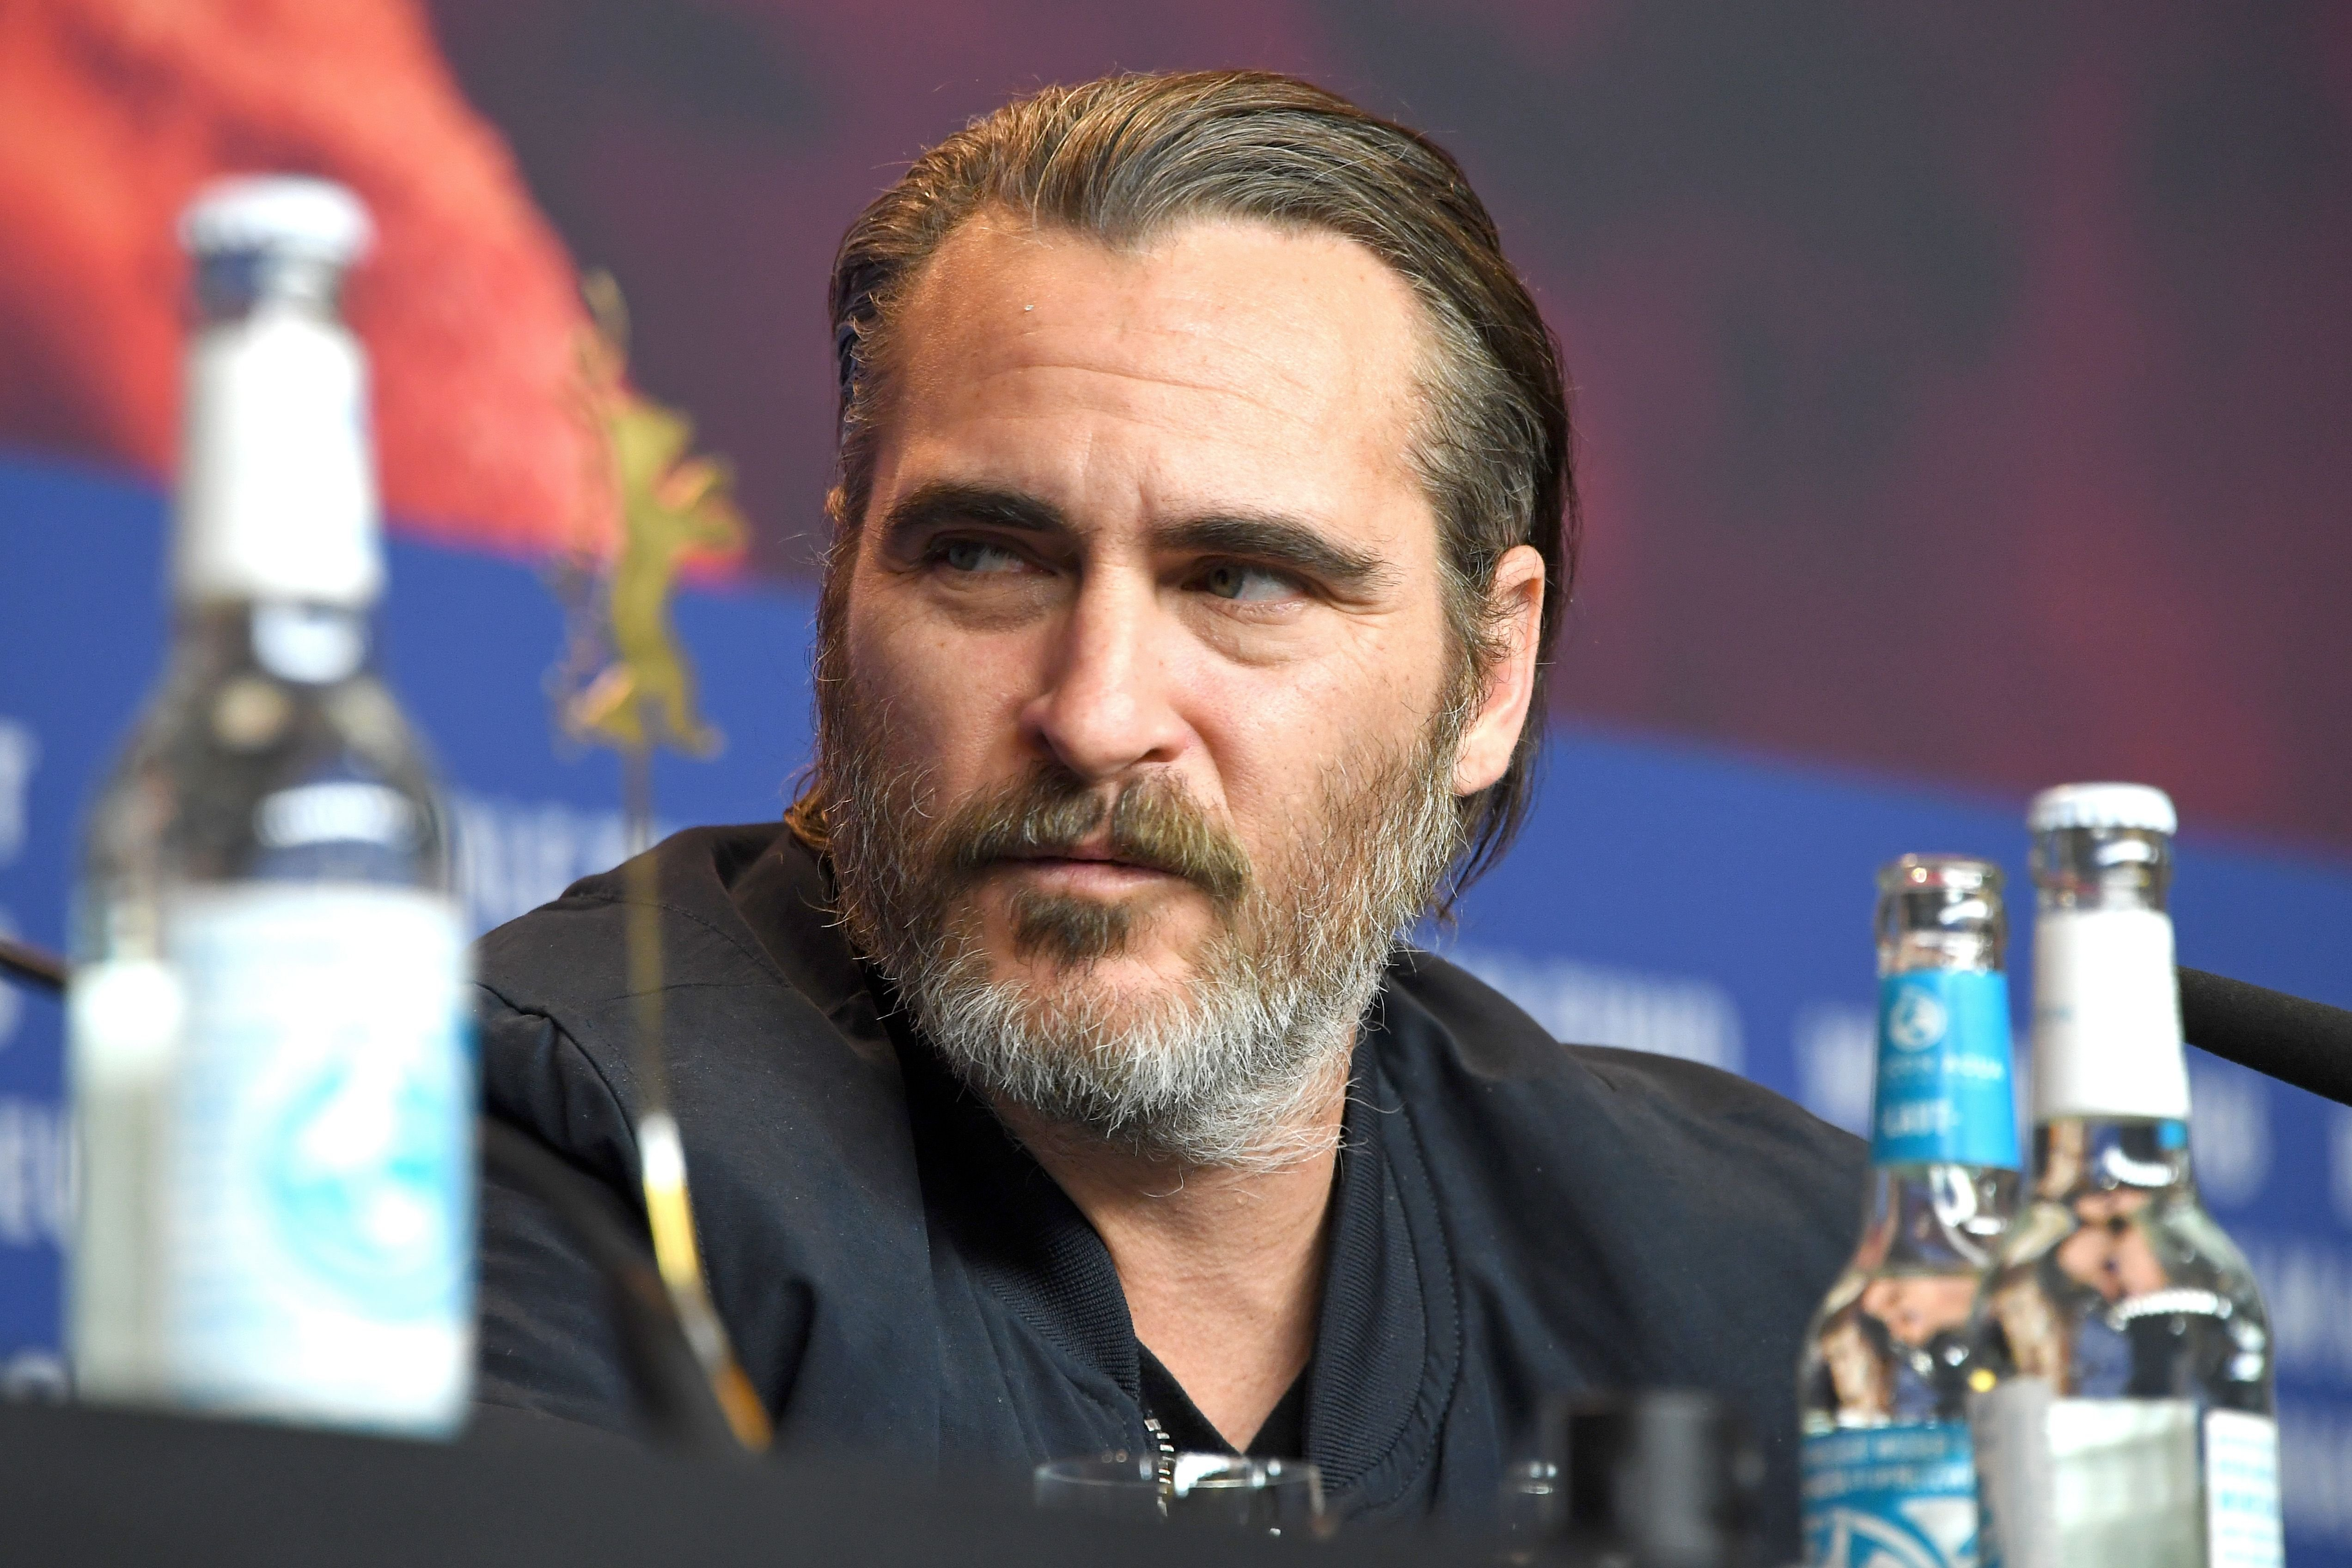 BERLIN, GERMANY - FEBRUARY 20: Joaquin Phoenix is seen at the 'Don't Worry, He Won't Get Far on Foot' press conference during the 68th Berlinale International Film Festival Berlin at Grand Hyatt Hotel on February 20, 2018 in Berlin, Germany. | Foto von: Pascal Le Segretain/Getty Images